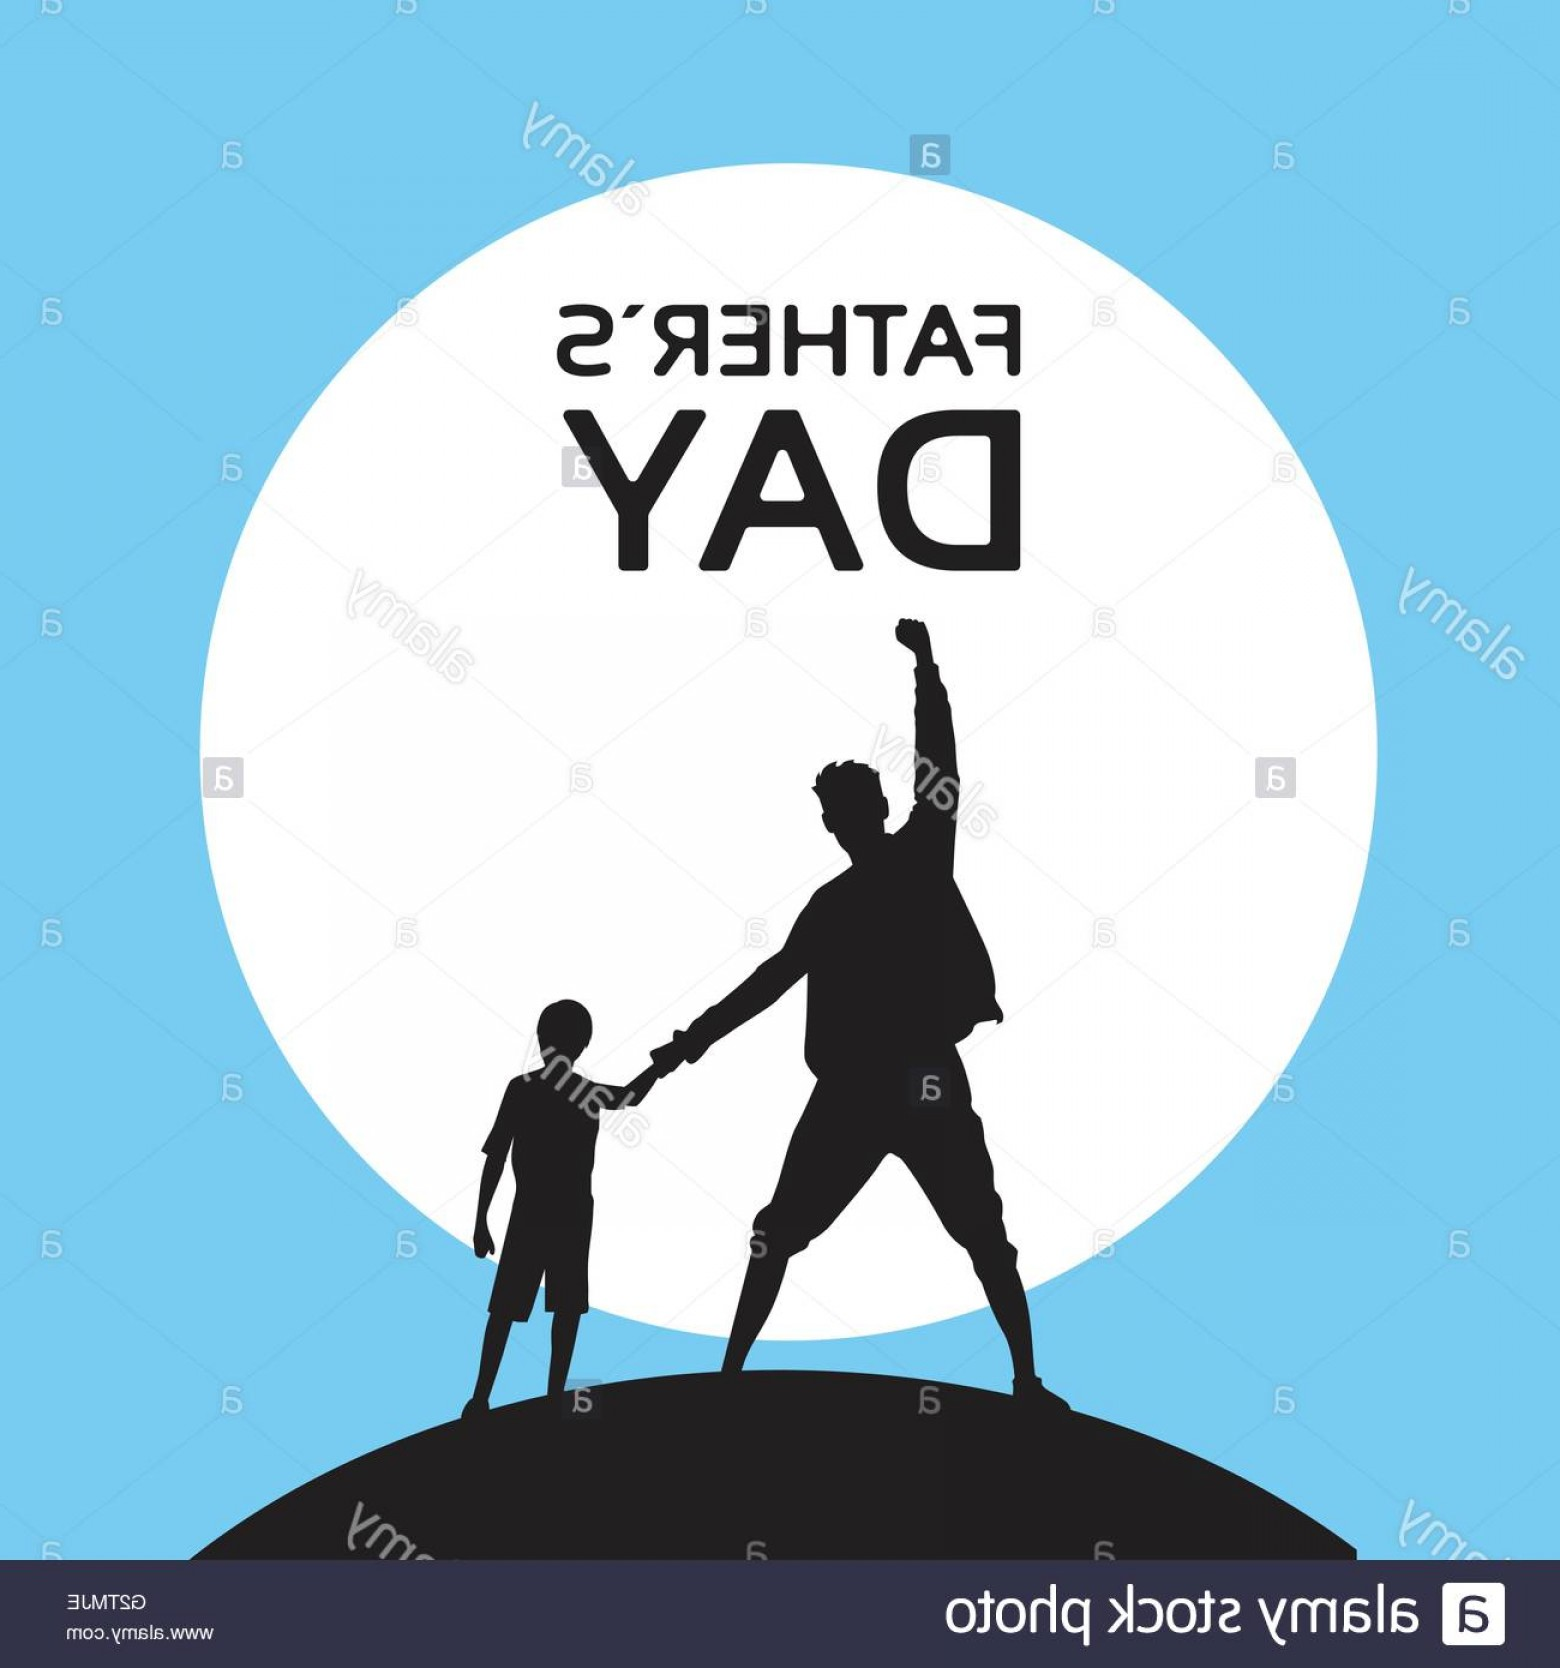 Holding Hands Up Silhouette Vector: Stock Photo Father Day Holiday Silhouette Son Dad Hold Hands Up